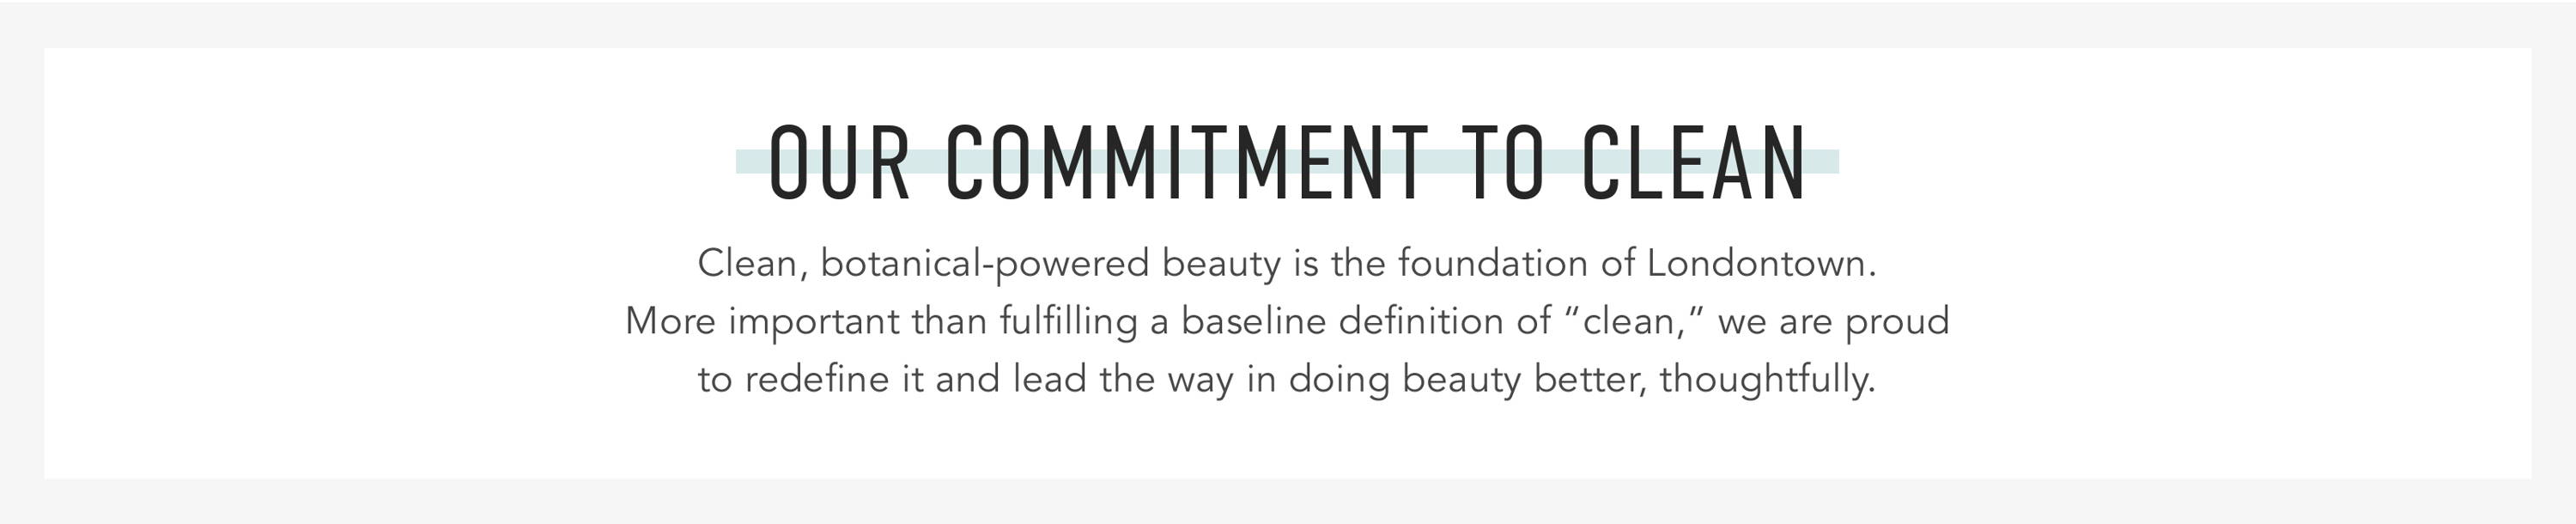 OUR COMMITMENT TO CLEAN: Clean, botanical-powered beauty is in the foundation of Londontown. More important than fulfilling a baseline definition of